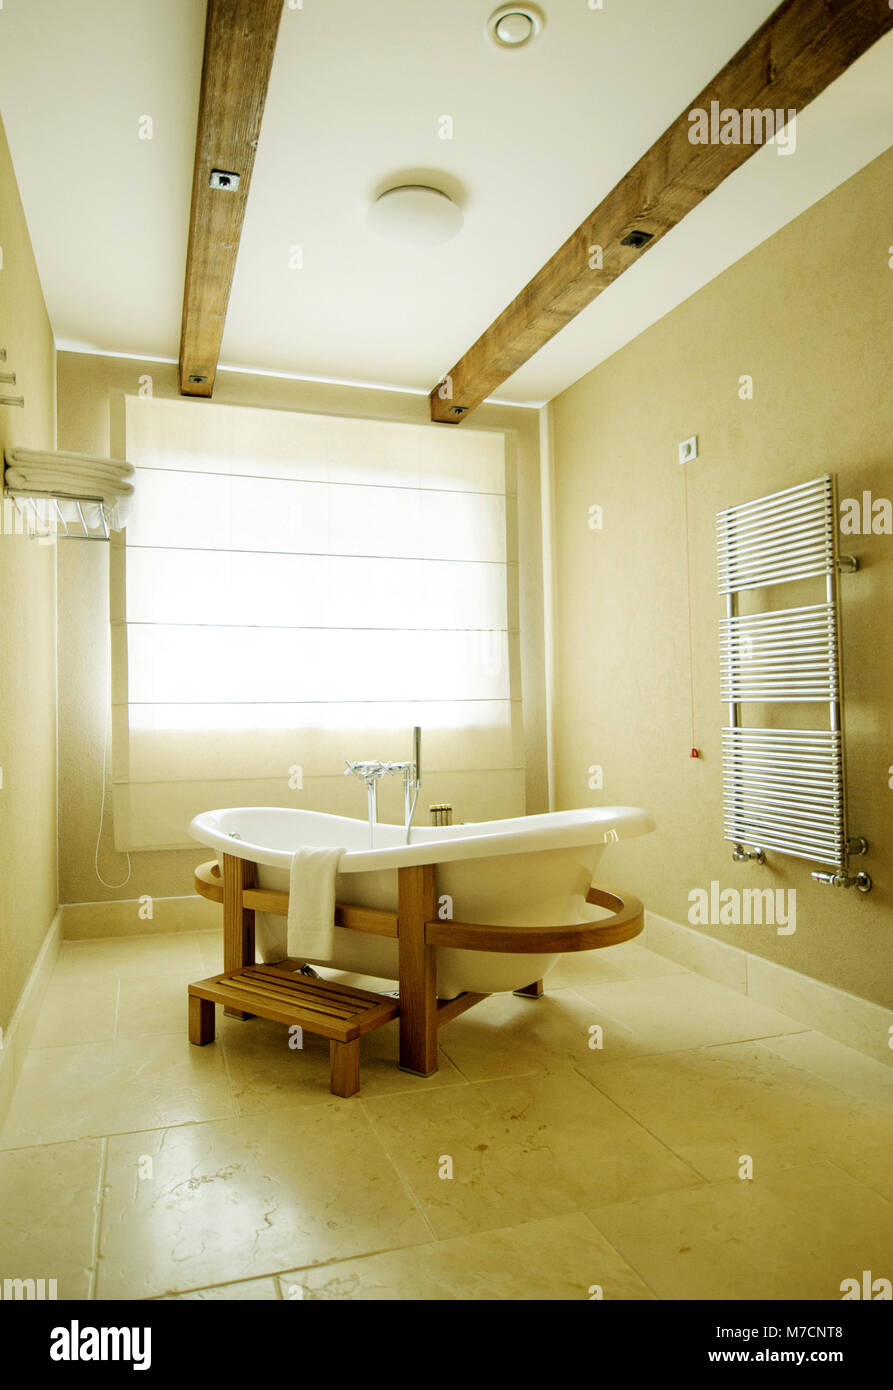 beautiful white tub against the window. bath stands on a wooden stand - Stock Image